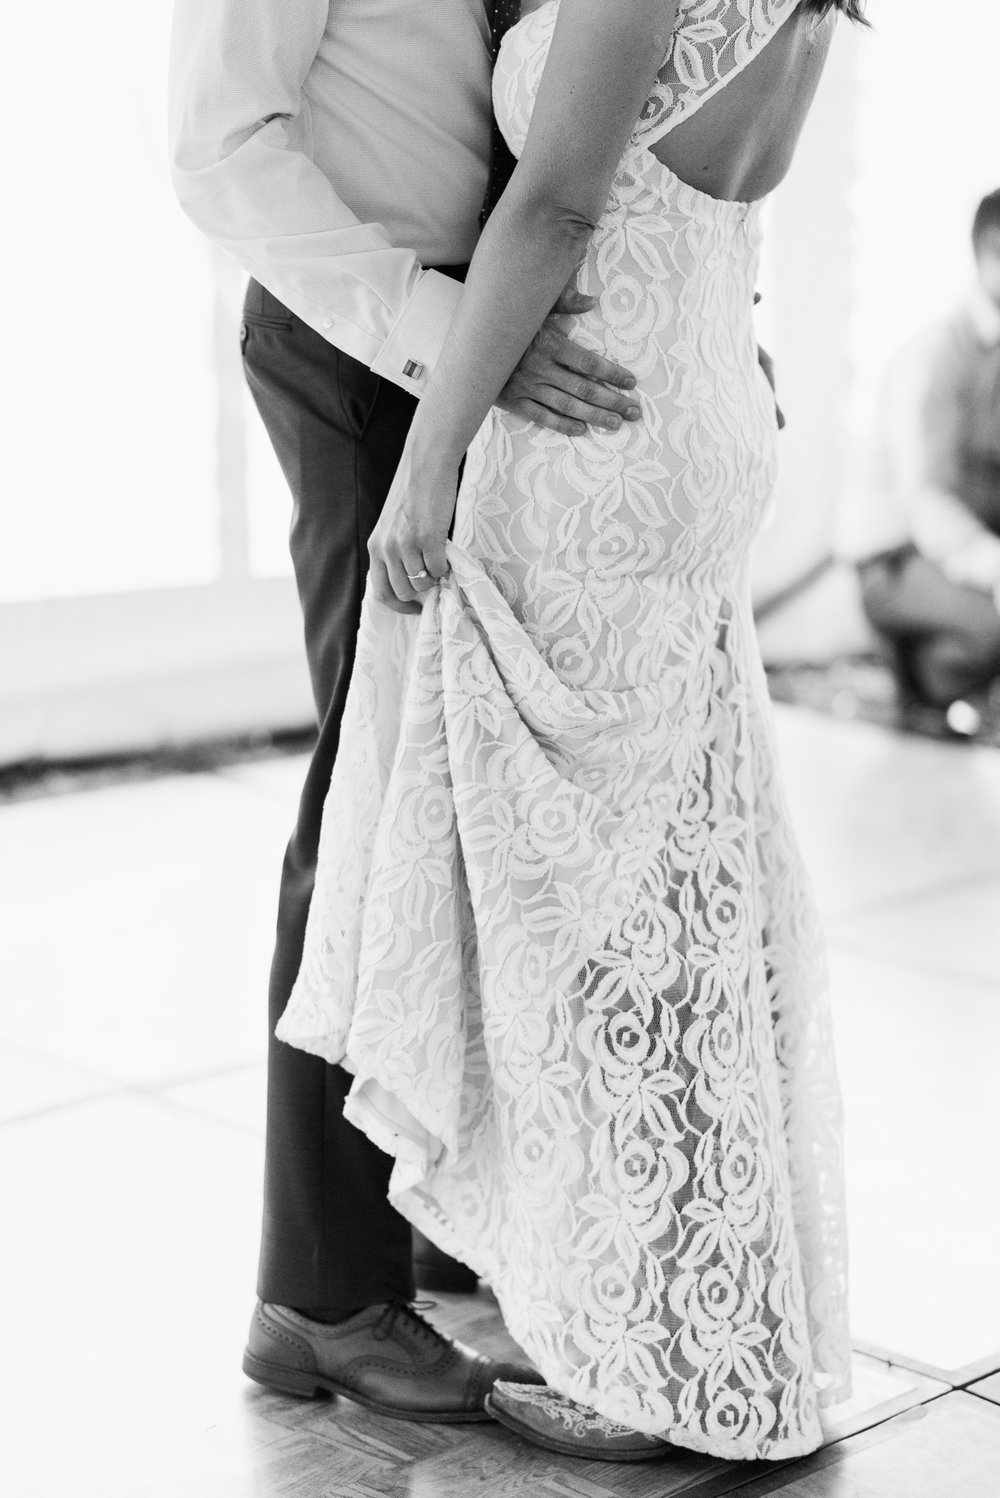 A&Bwedding2017BLOG-159.jpg